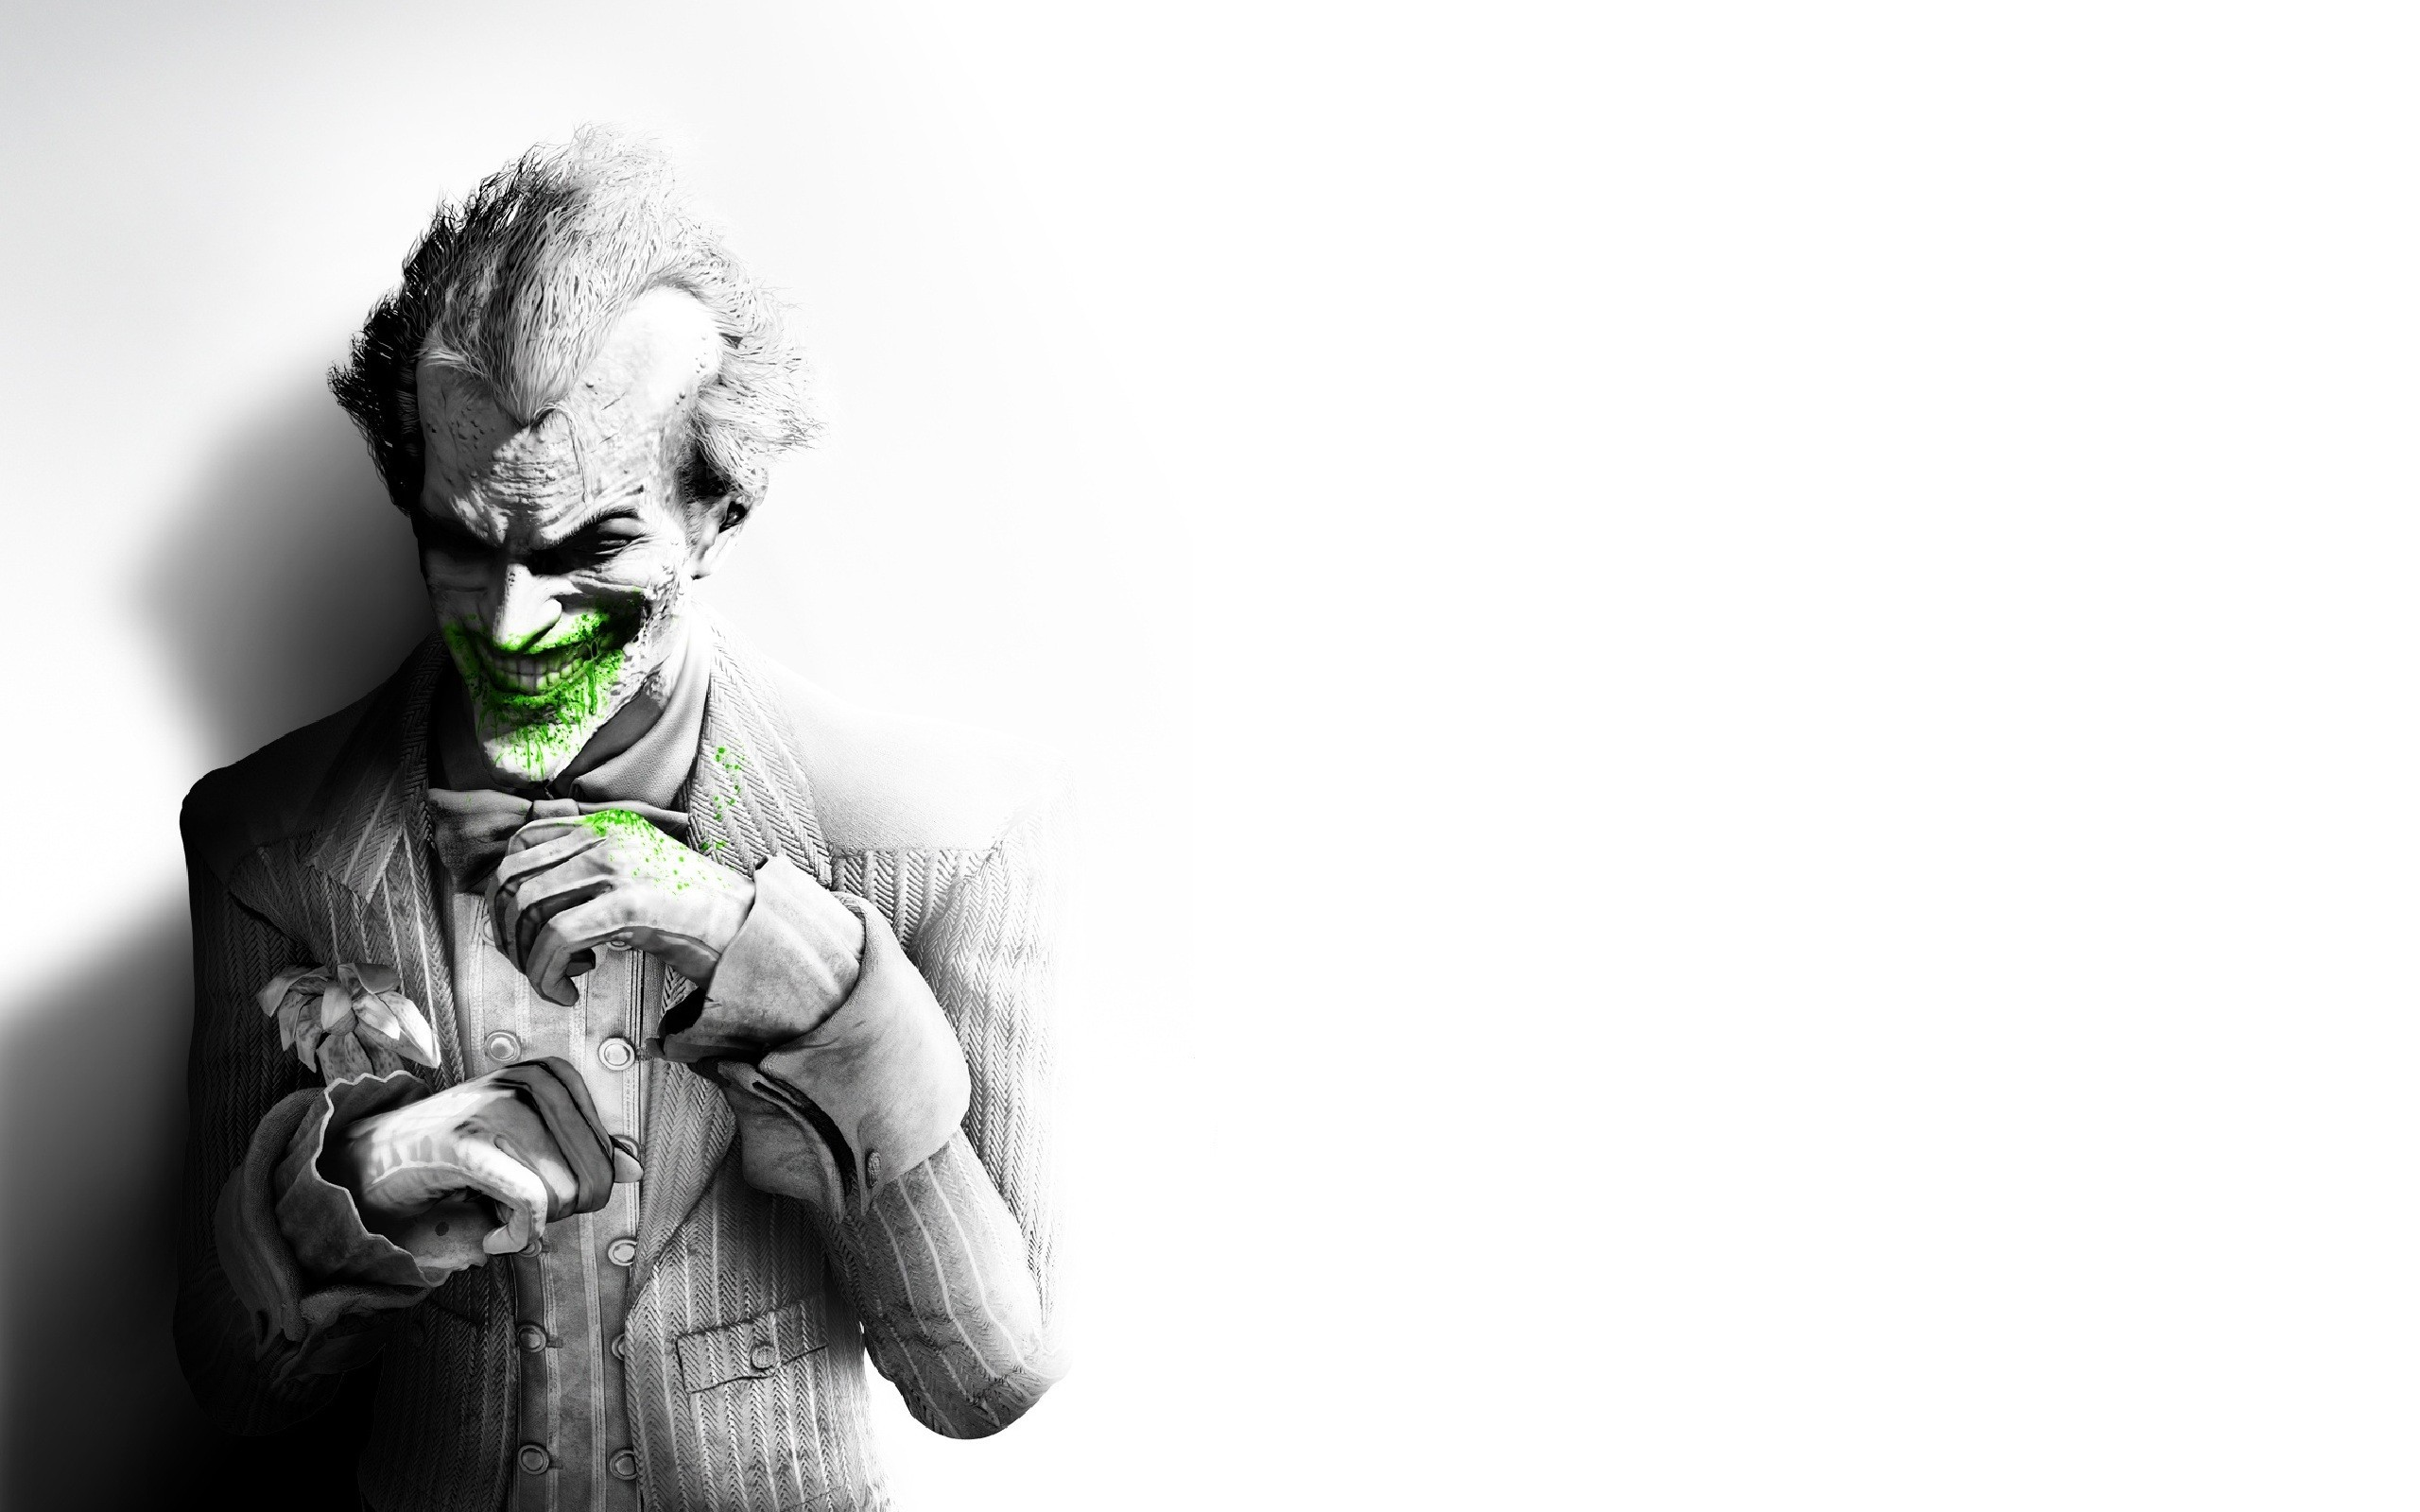 Looking for Harley Quinn wallpaper similar in style to this Joker one.